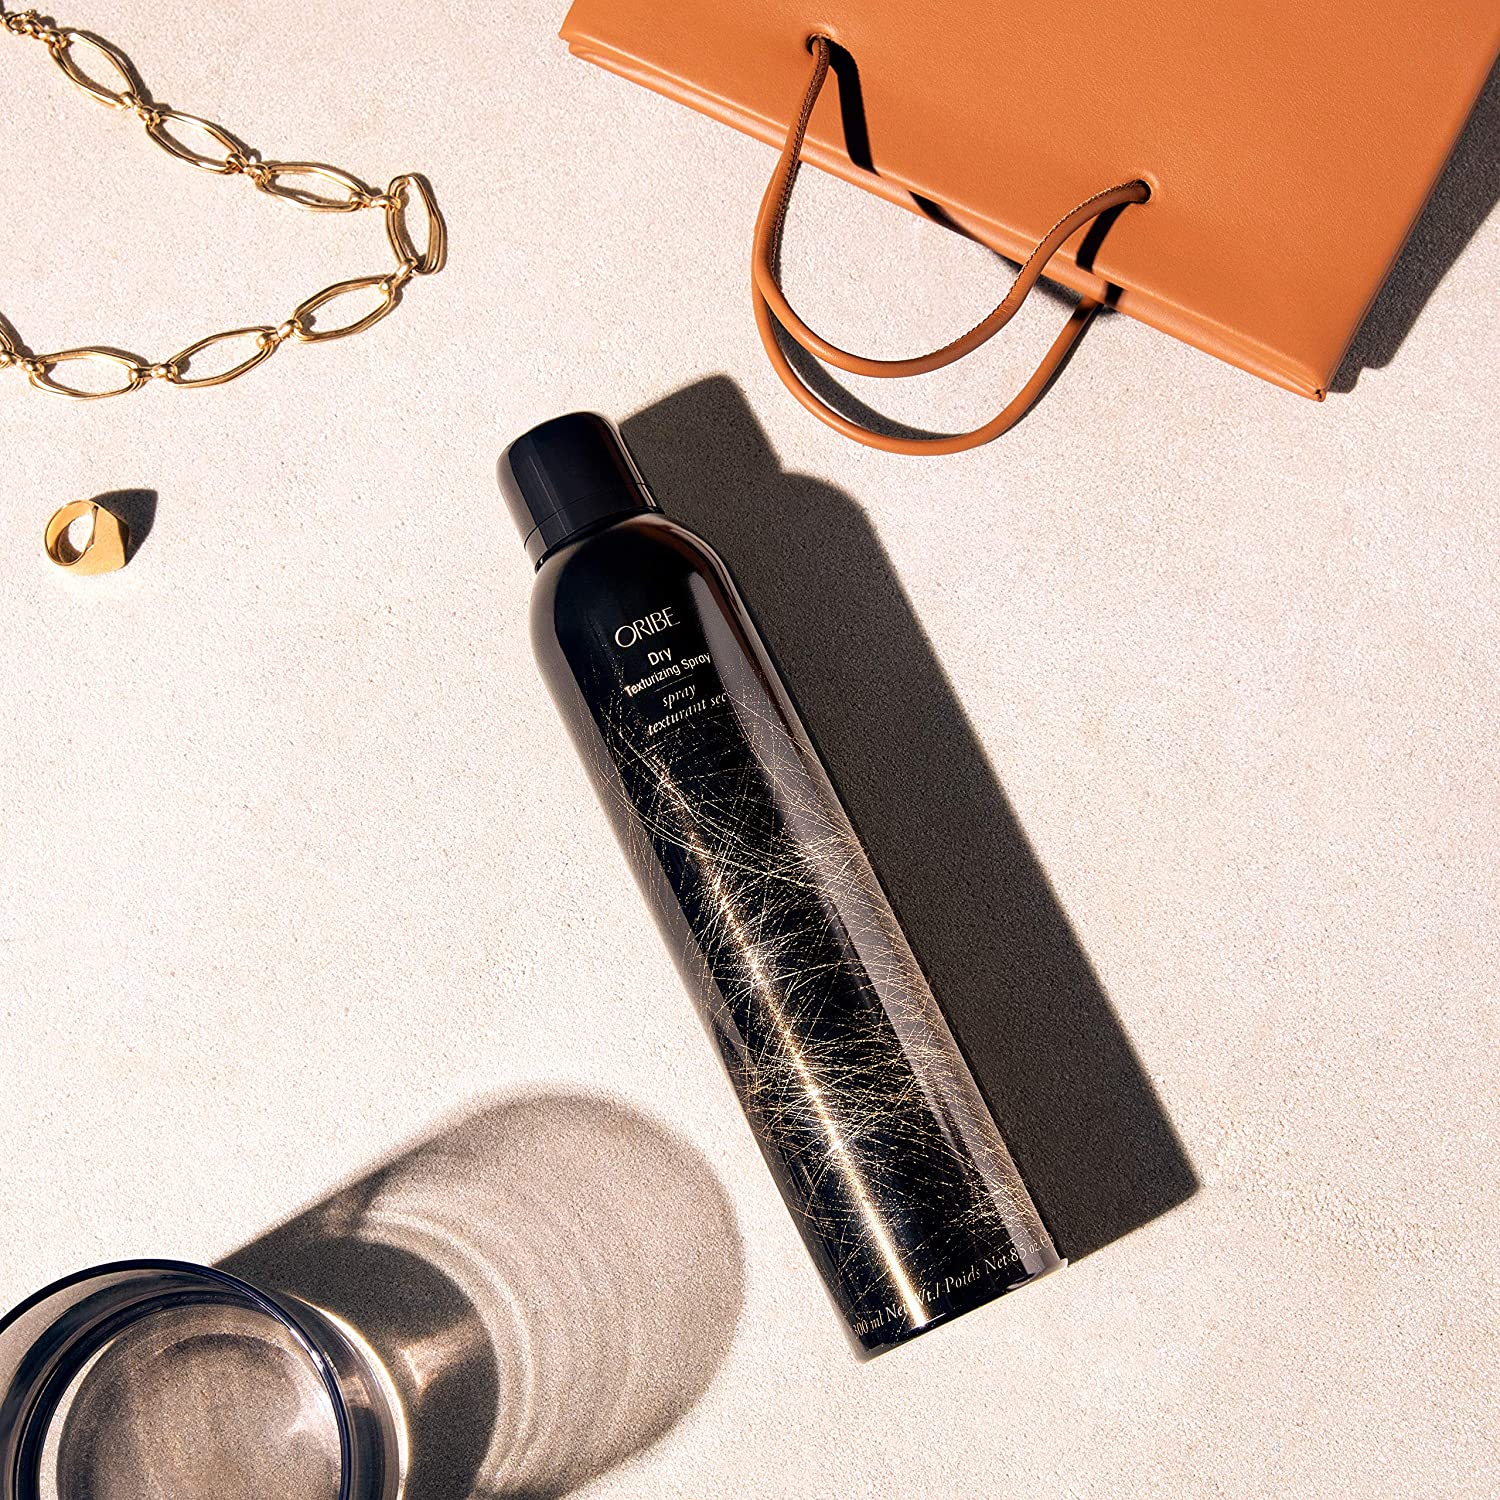 Oribe Dry Texturizing Spray